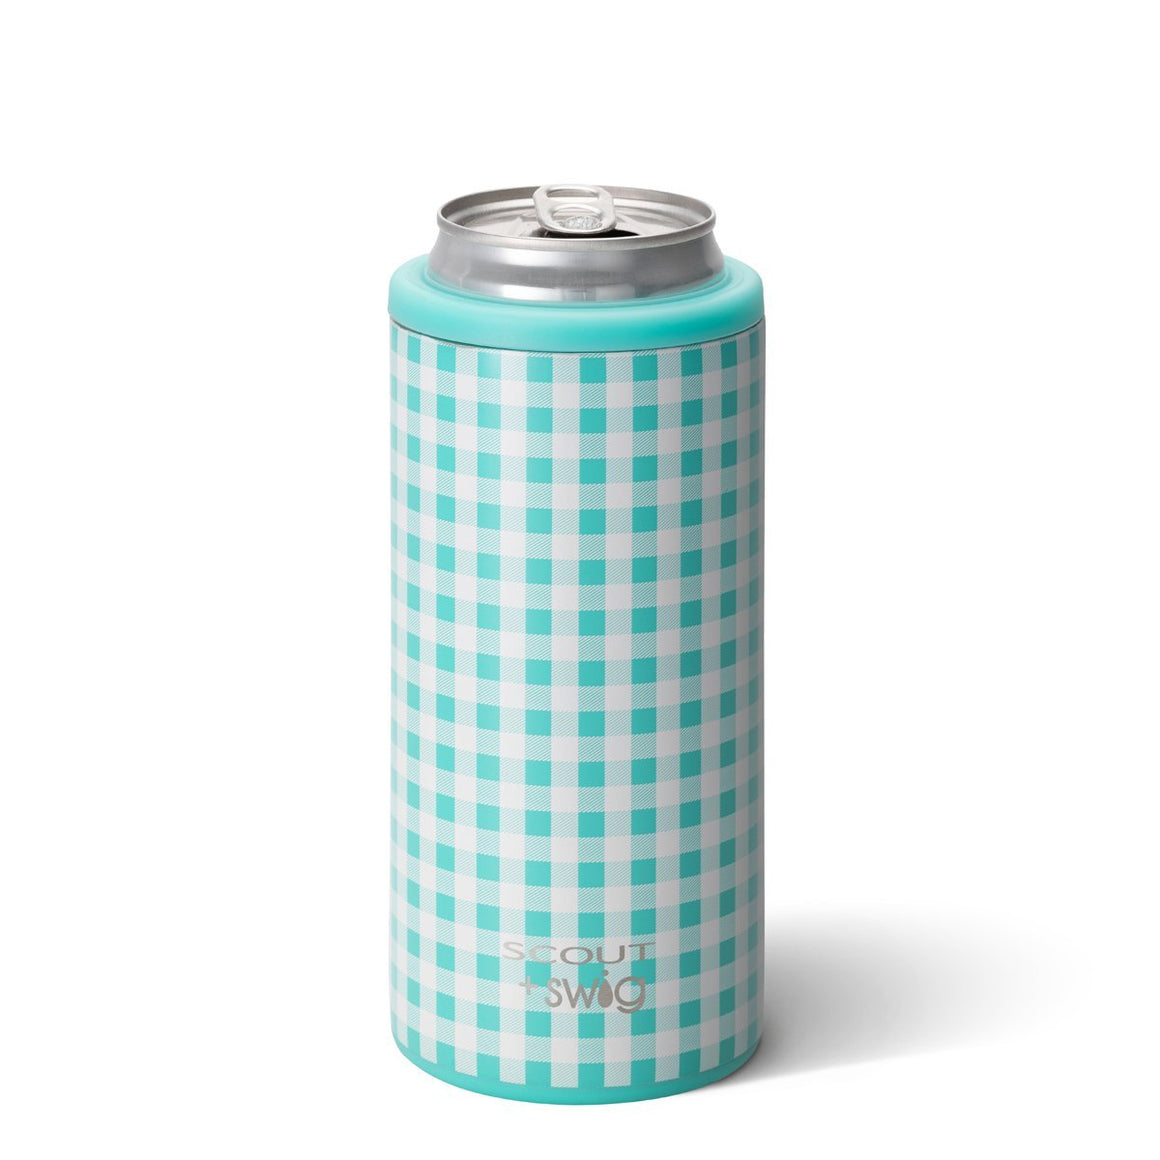 SCOUT + Swig Barnaby Checkham Skinny Can Cooler (12oz) - The Preppy Bunny